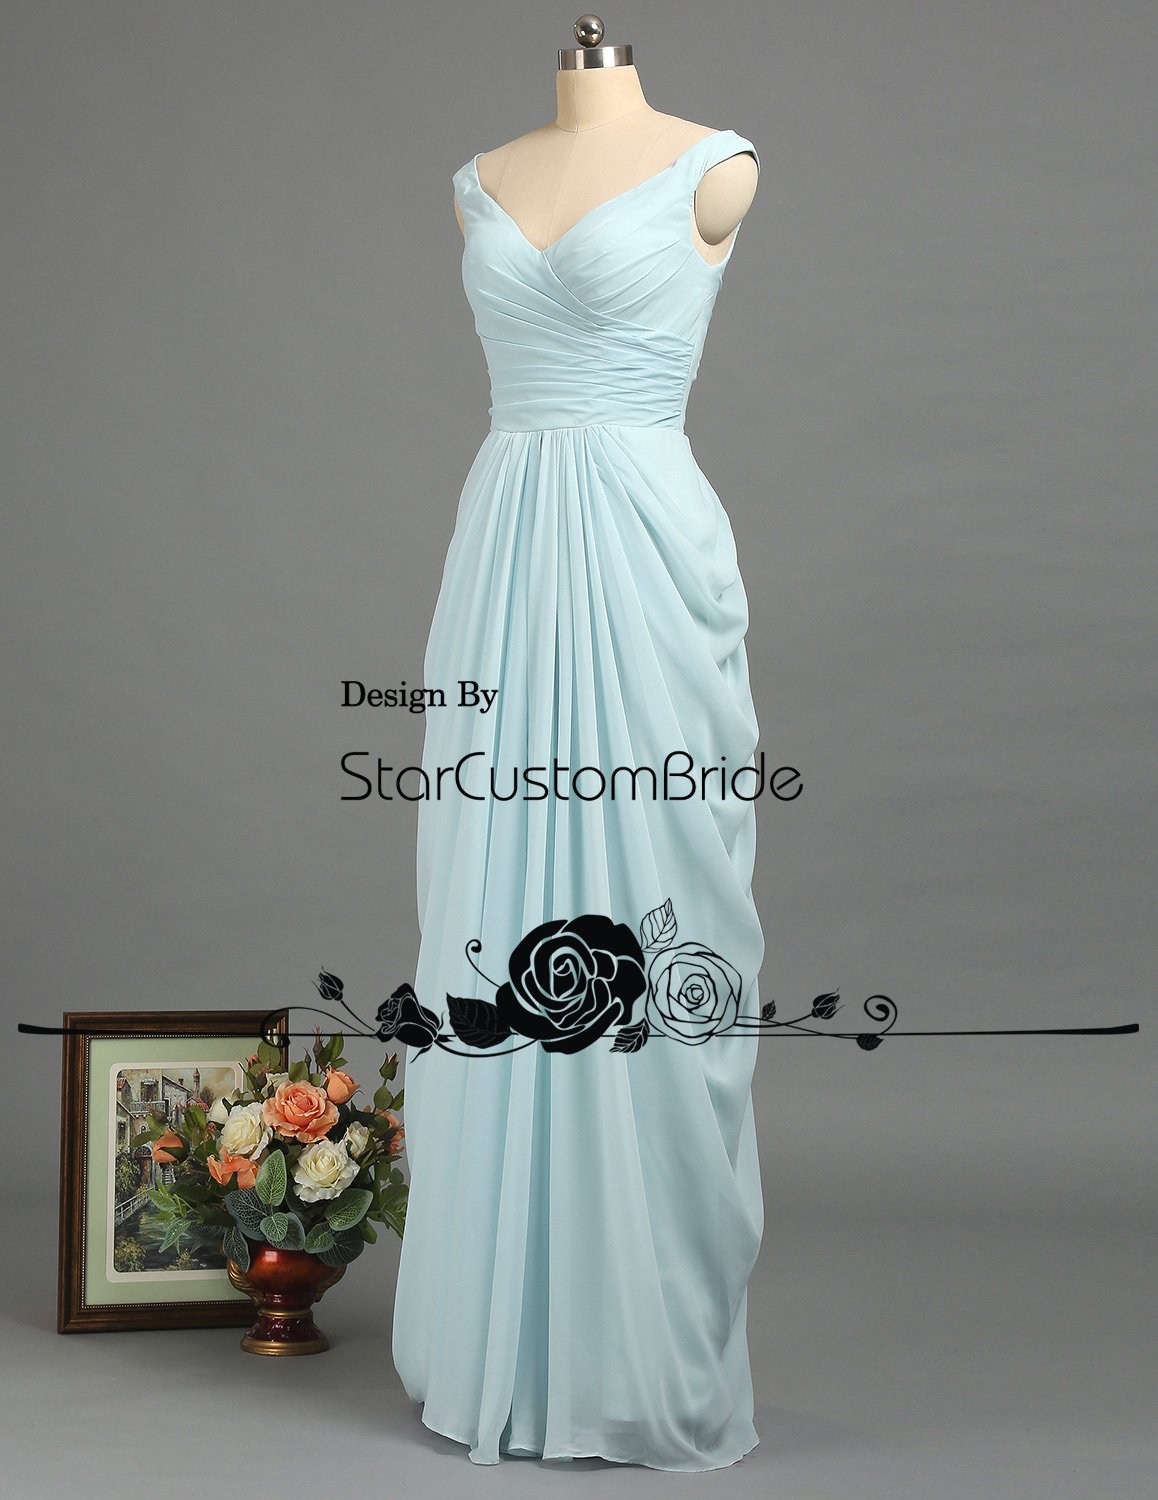 8cc26c8f702 Amazon.com  Dusty Blue Bridesmaid Dress Long Chiffon Prom Dress 2018 V-Neck  Elegant Fall party Dress  Handmade